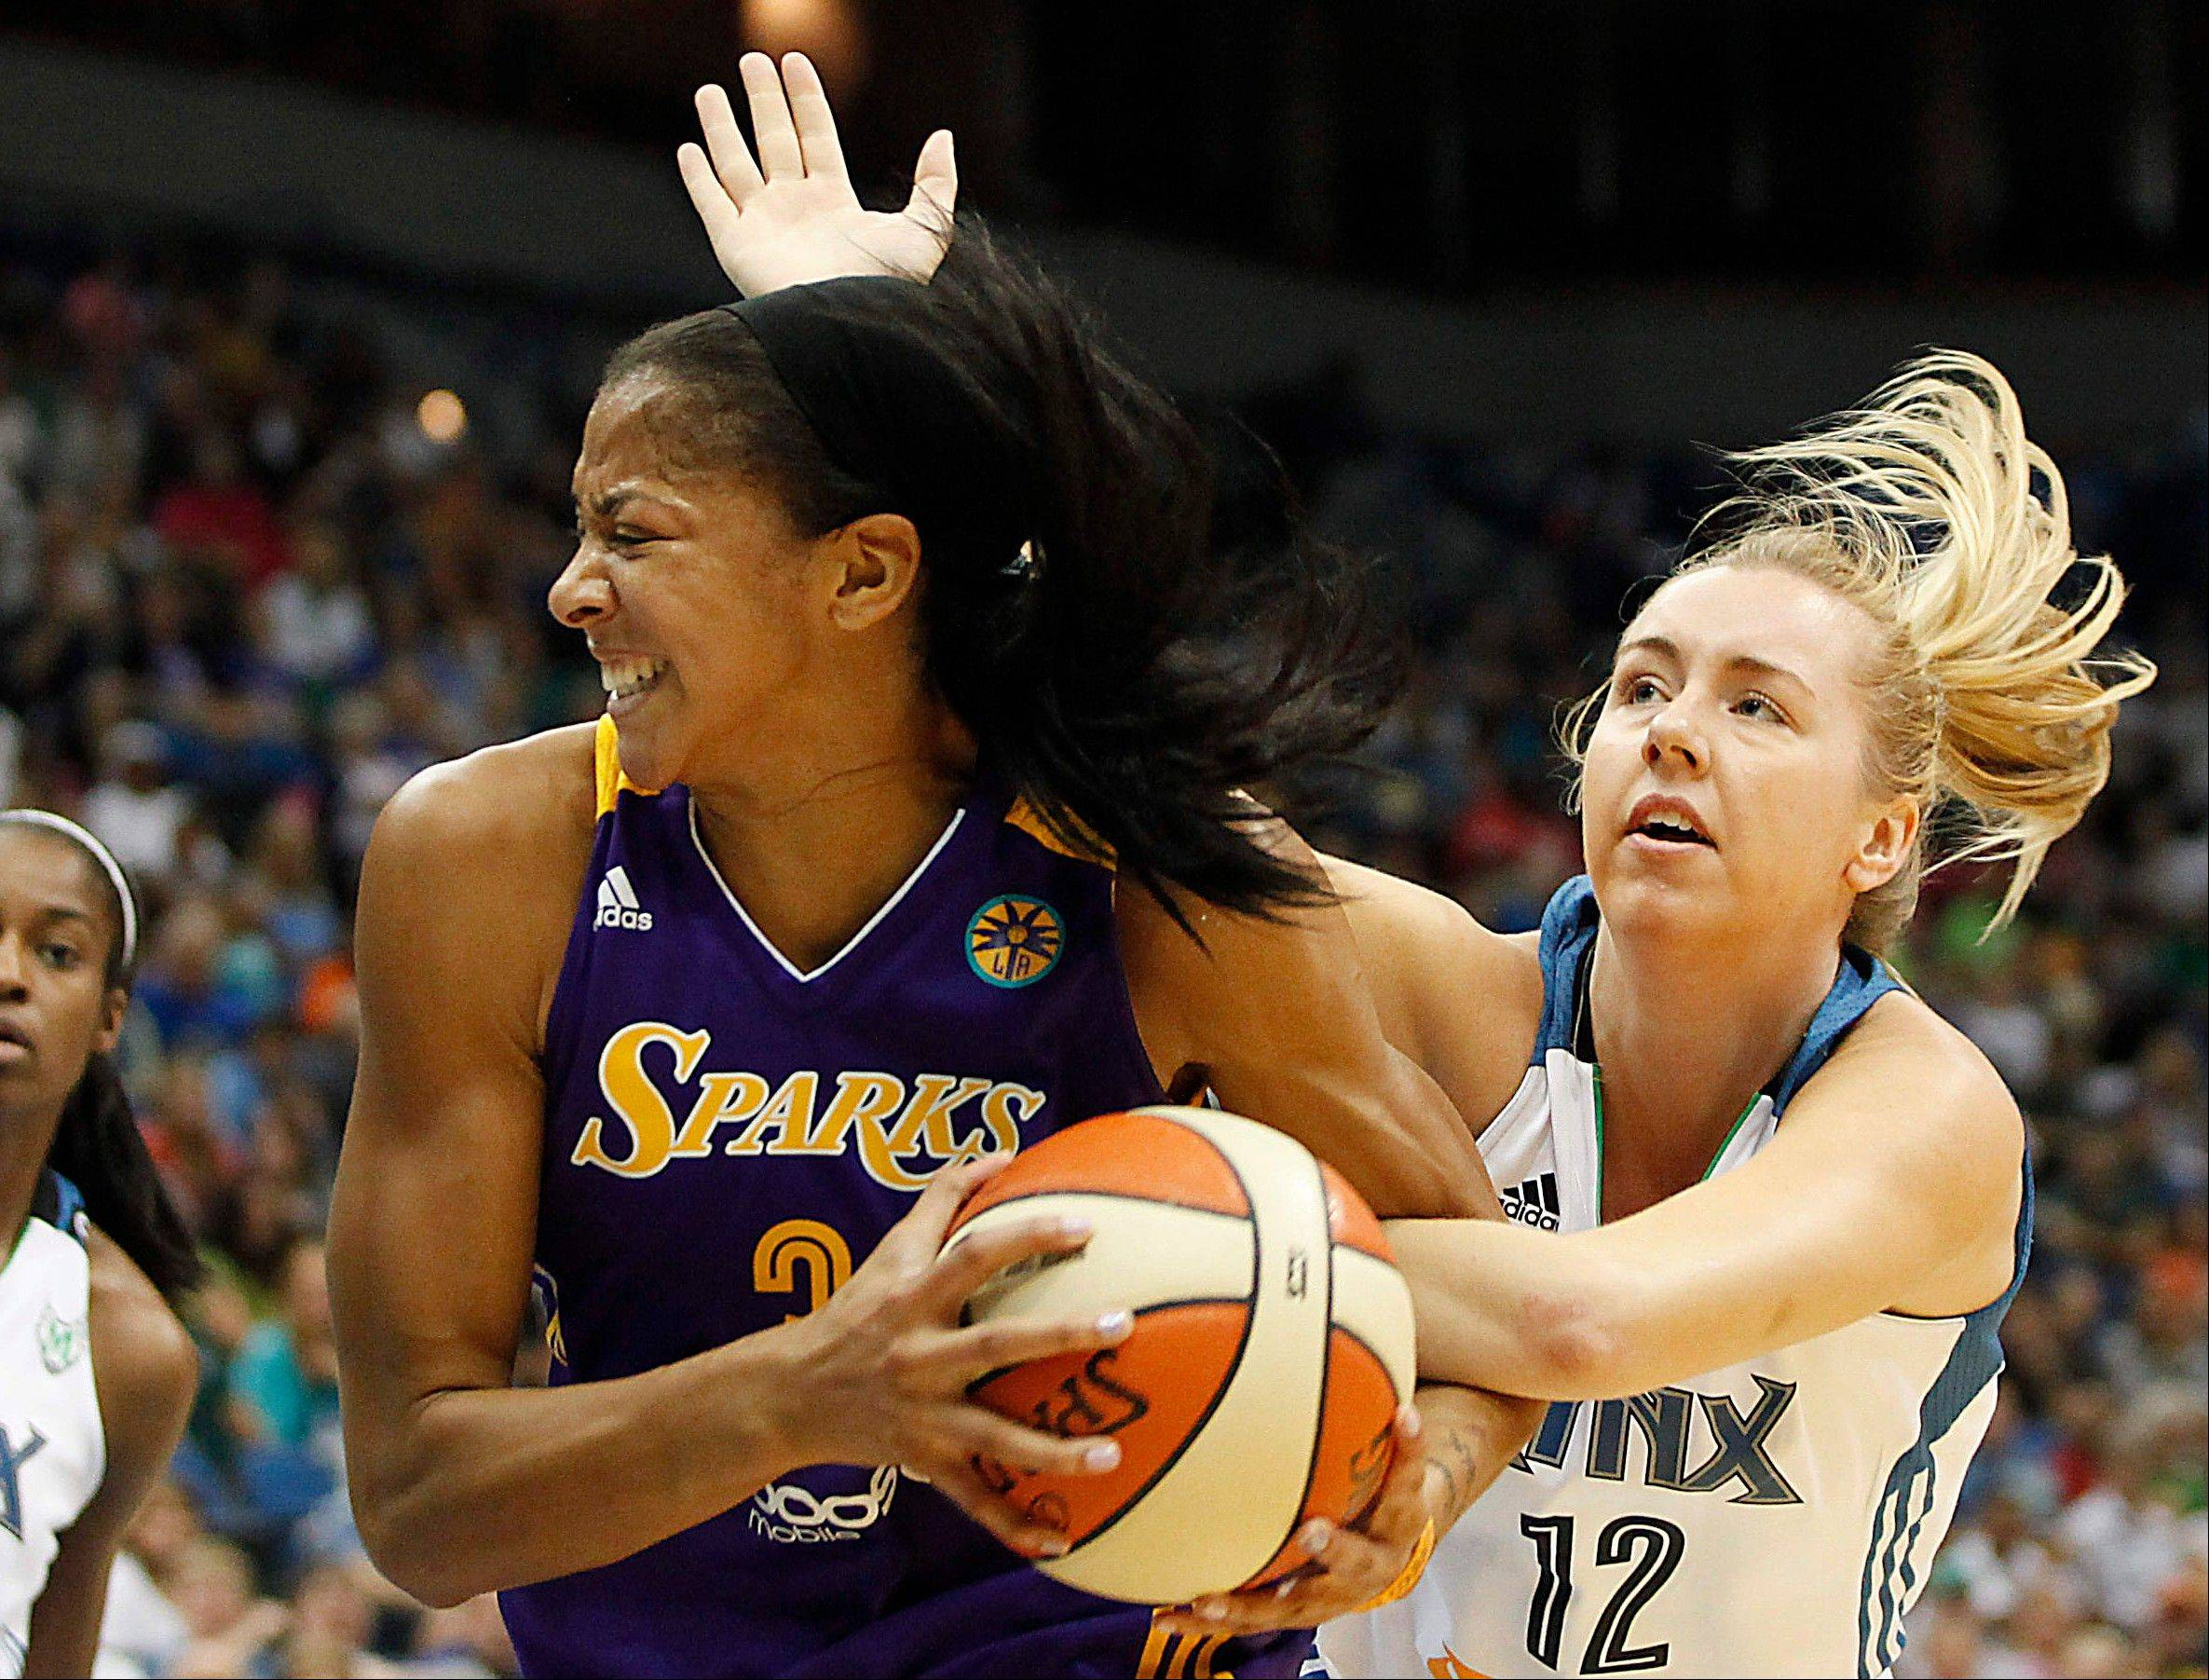 Naperville native Candace Parker, left, of the Los Angeles Sparks has won the 2013 MVP award, according to a WNBA source. Parker edged Minnesota's Maya Moore and Chicago Sky rookie Elena Delle Donne for the top honor. Parker also won the award as a rookie in 2008.